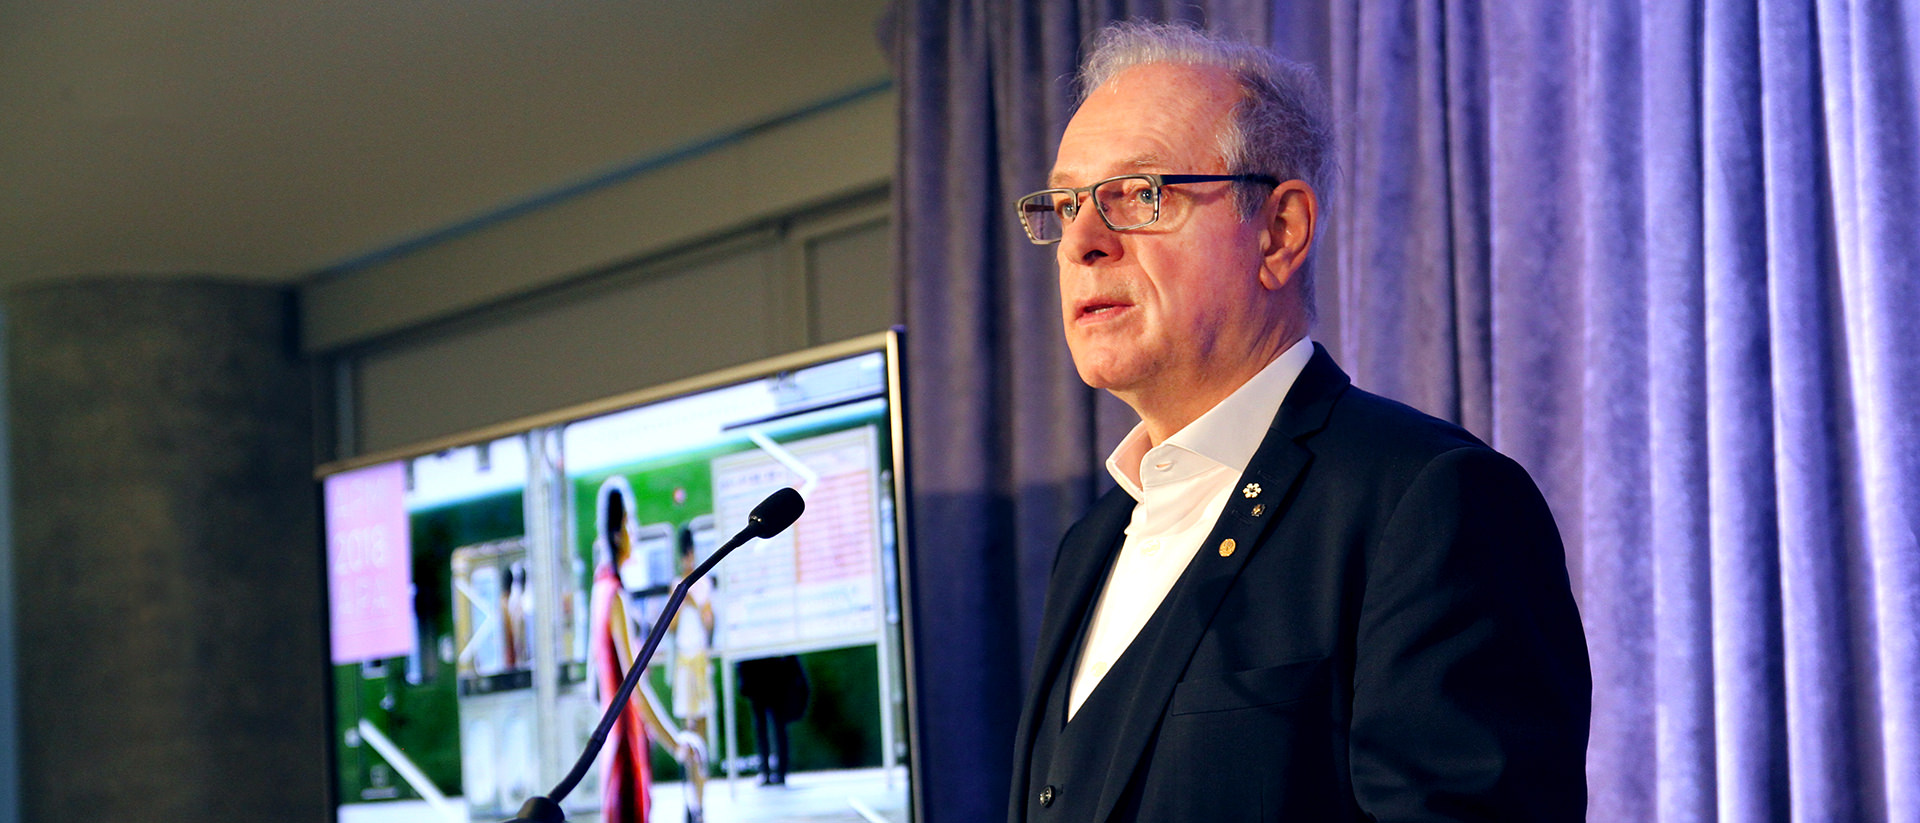 Simon Brault, Annual Public Meeting 2018